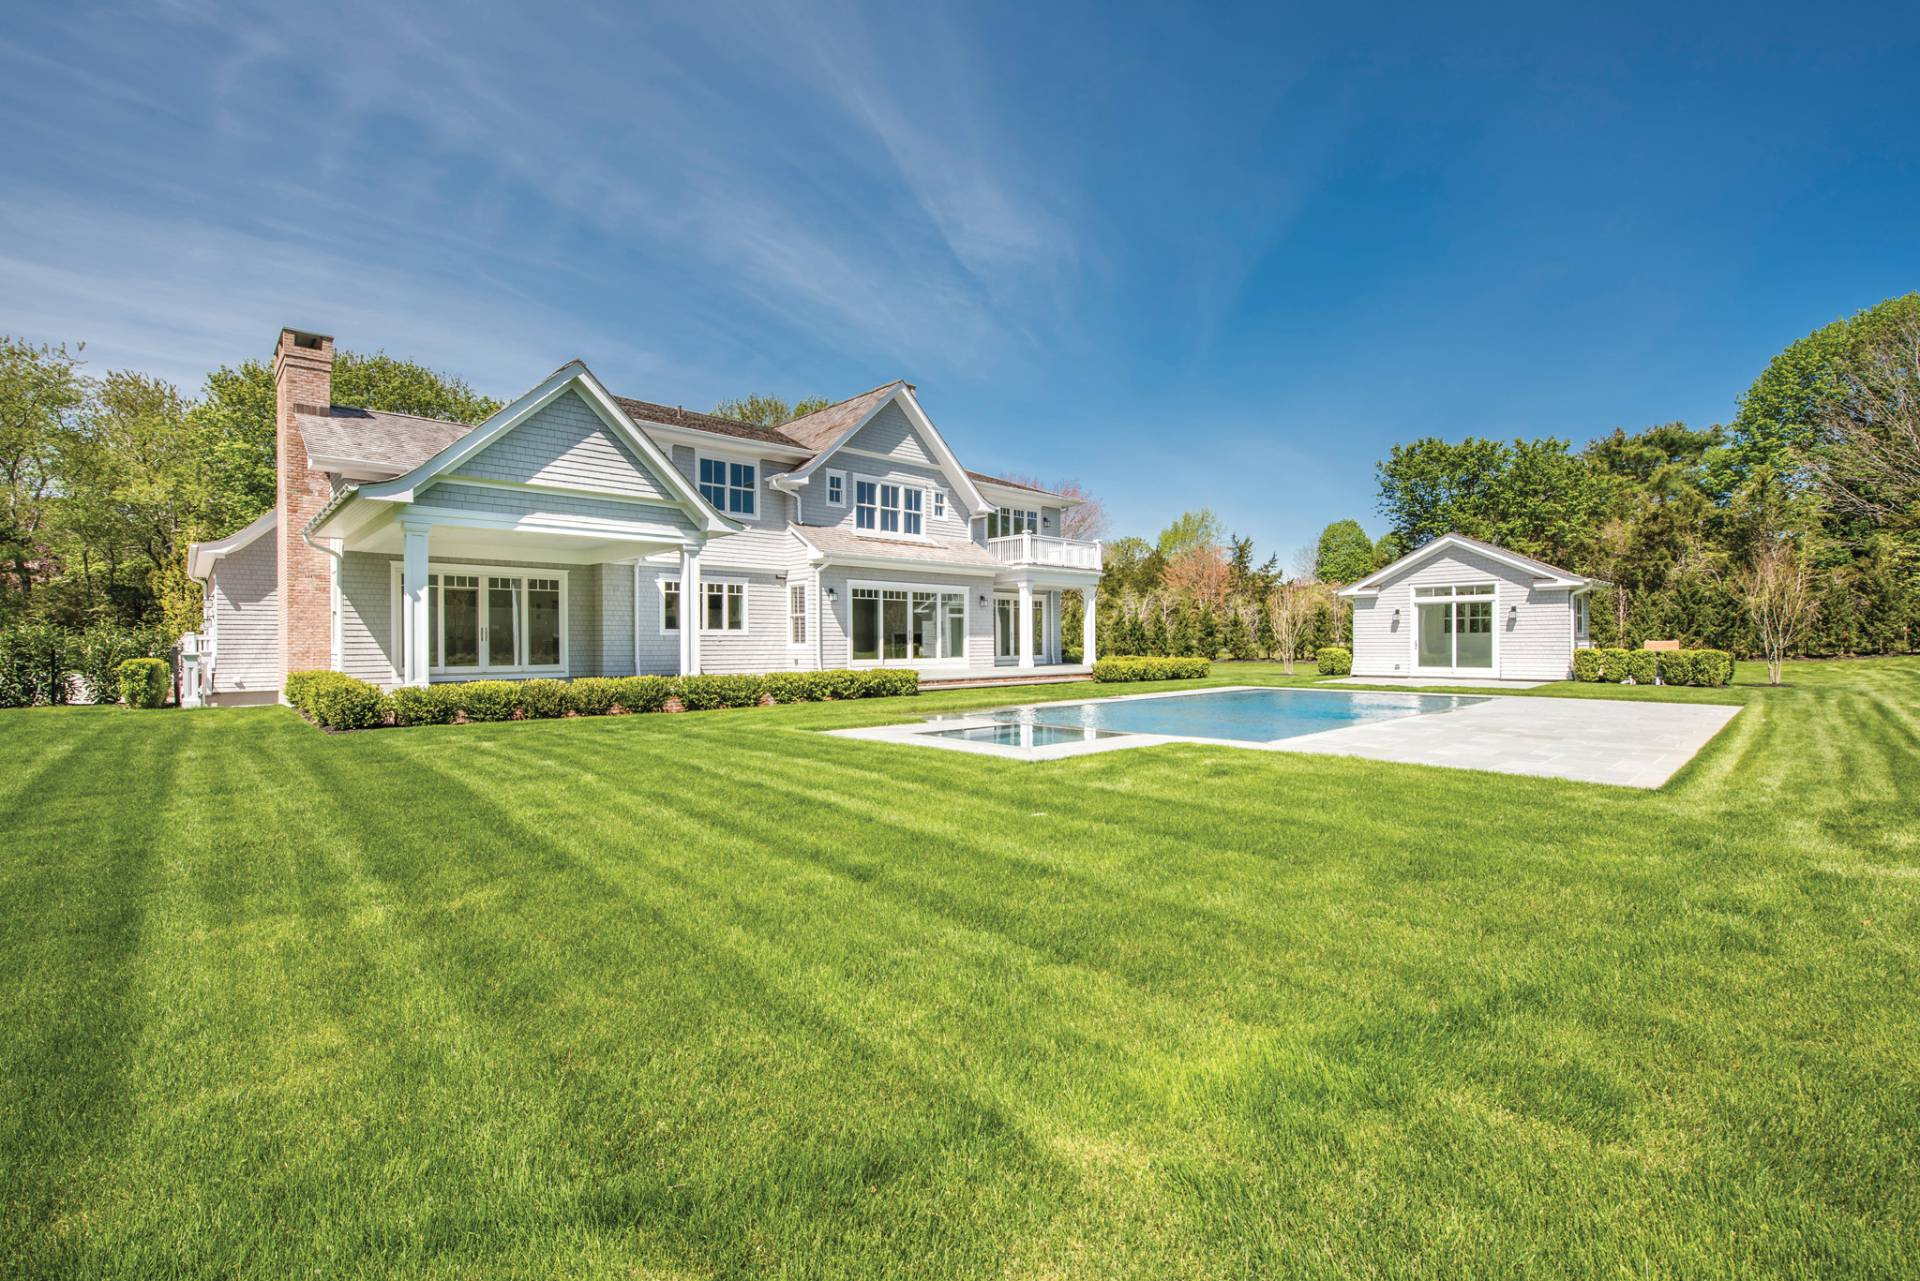 Single Family Home for Sale at Superb New Home In Amagansett South Near Beach 39 Indian Wells Highway, Amagansett, New York